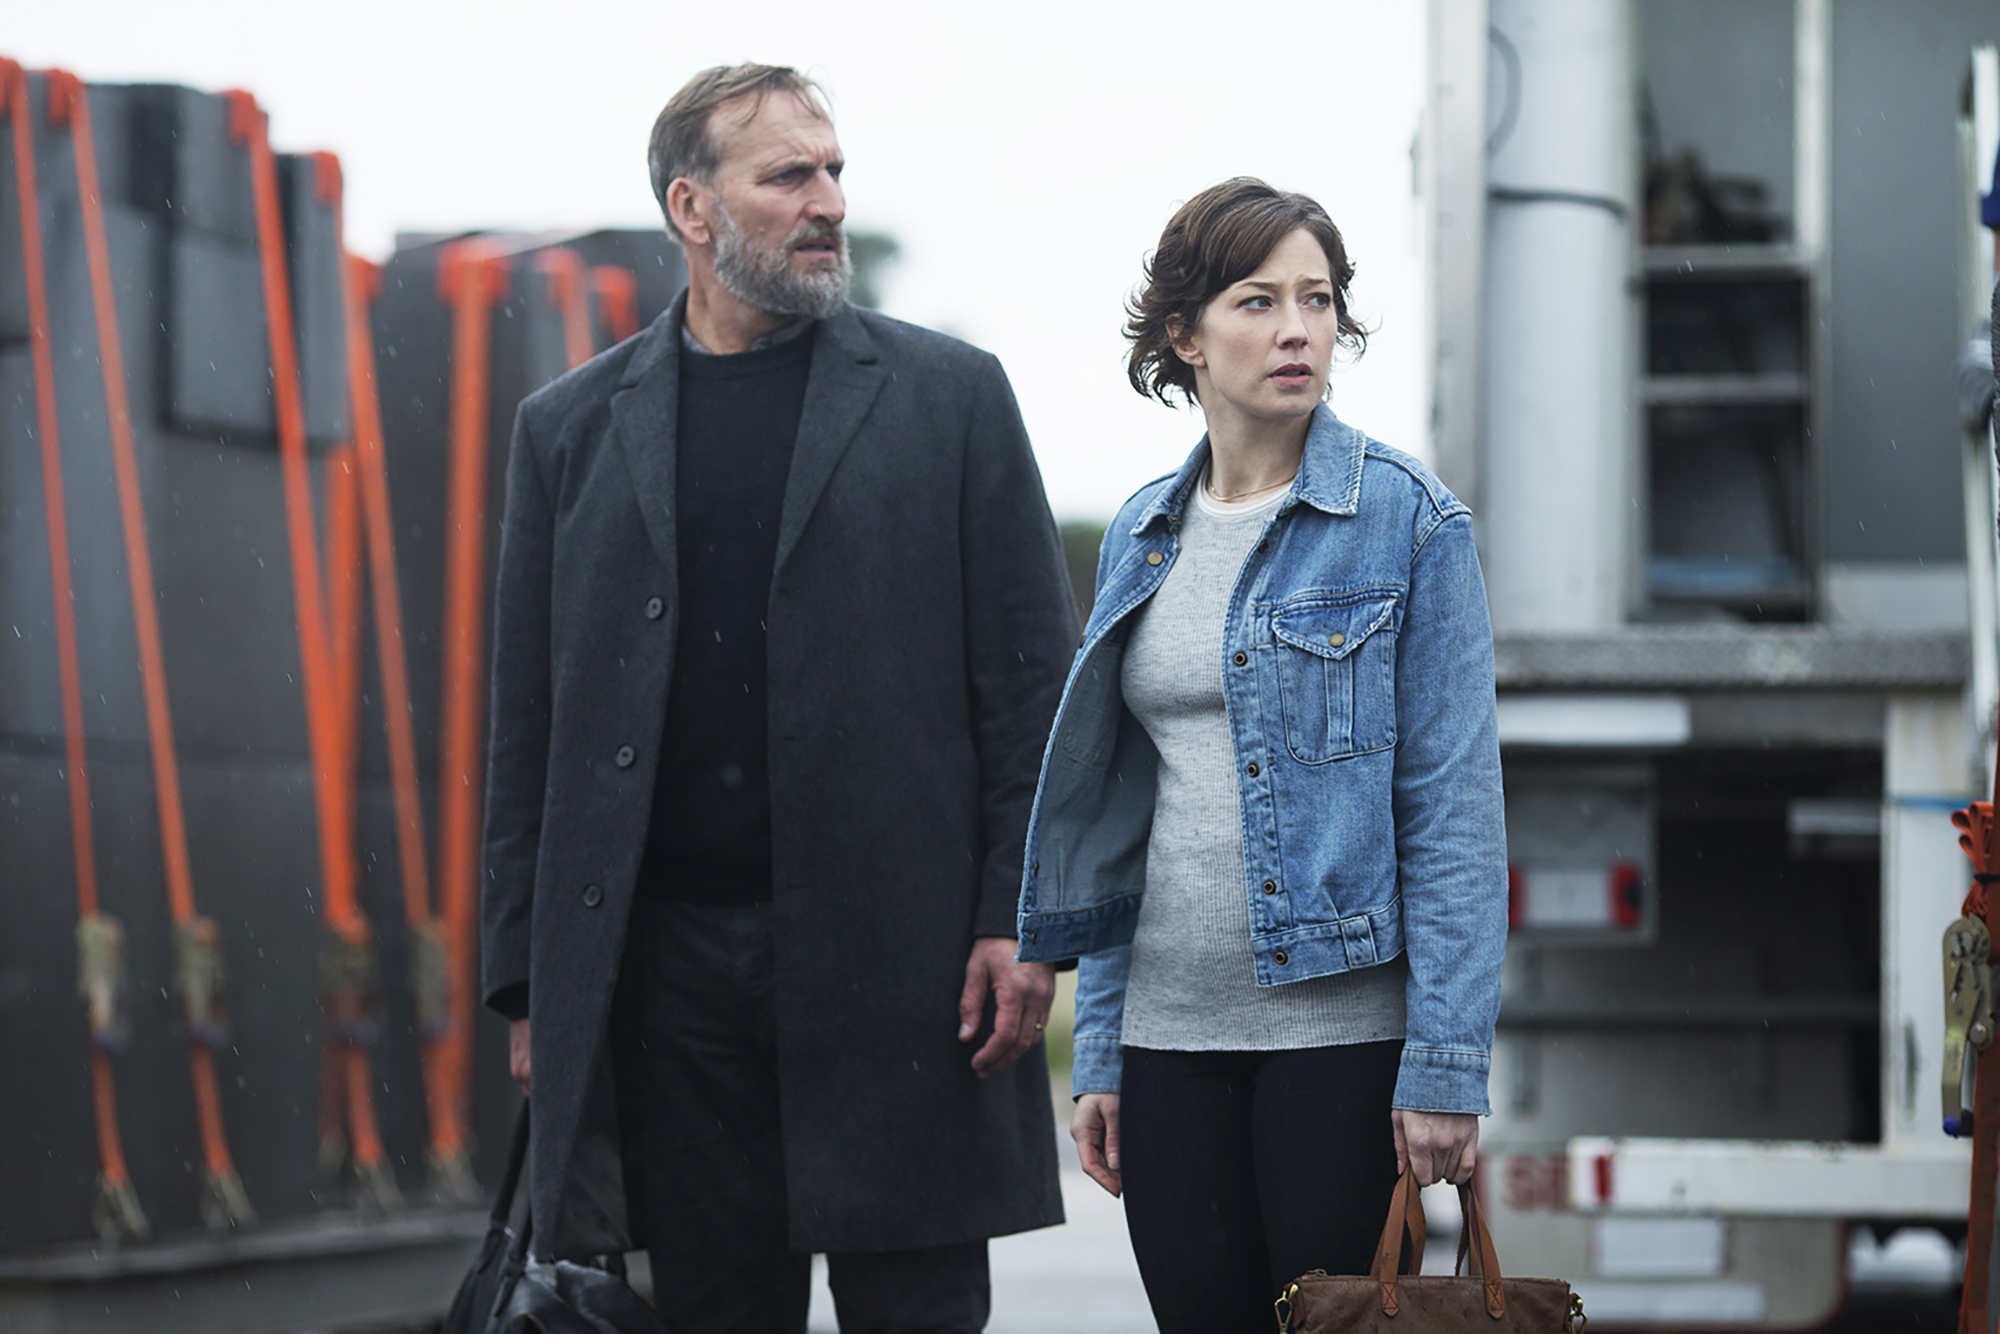 Christopher Eccleston and Carrie Coon in The Leftovers.